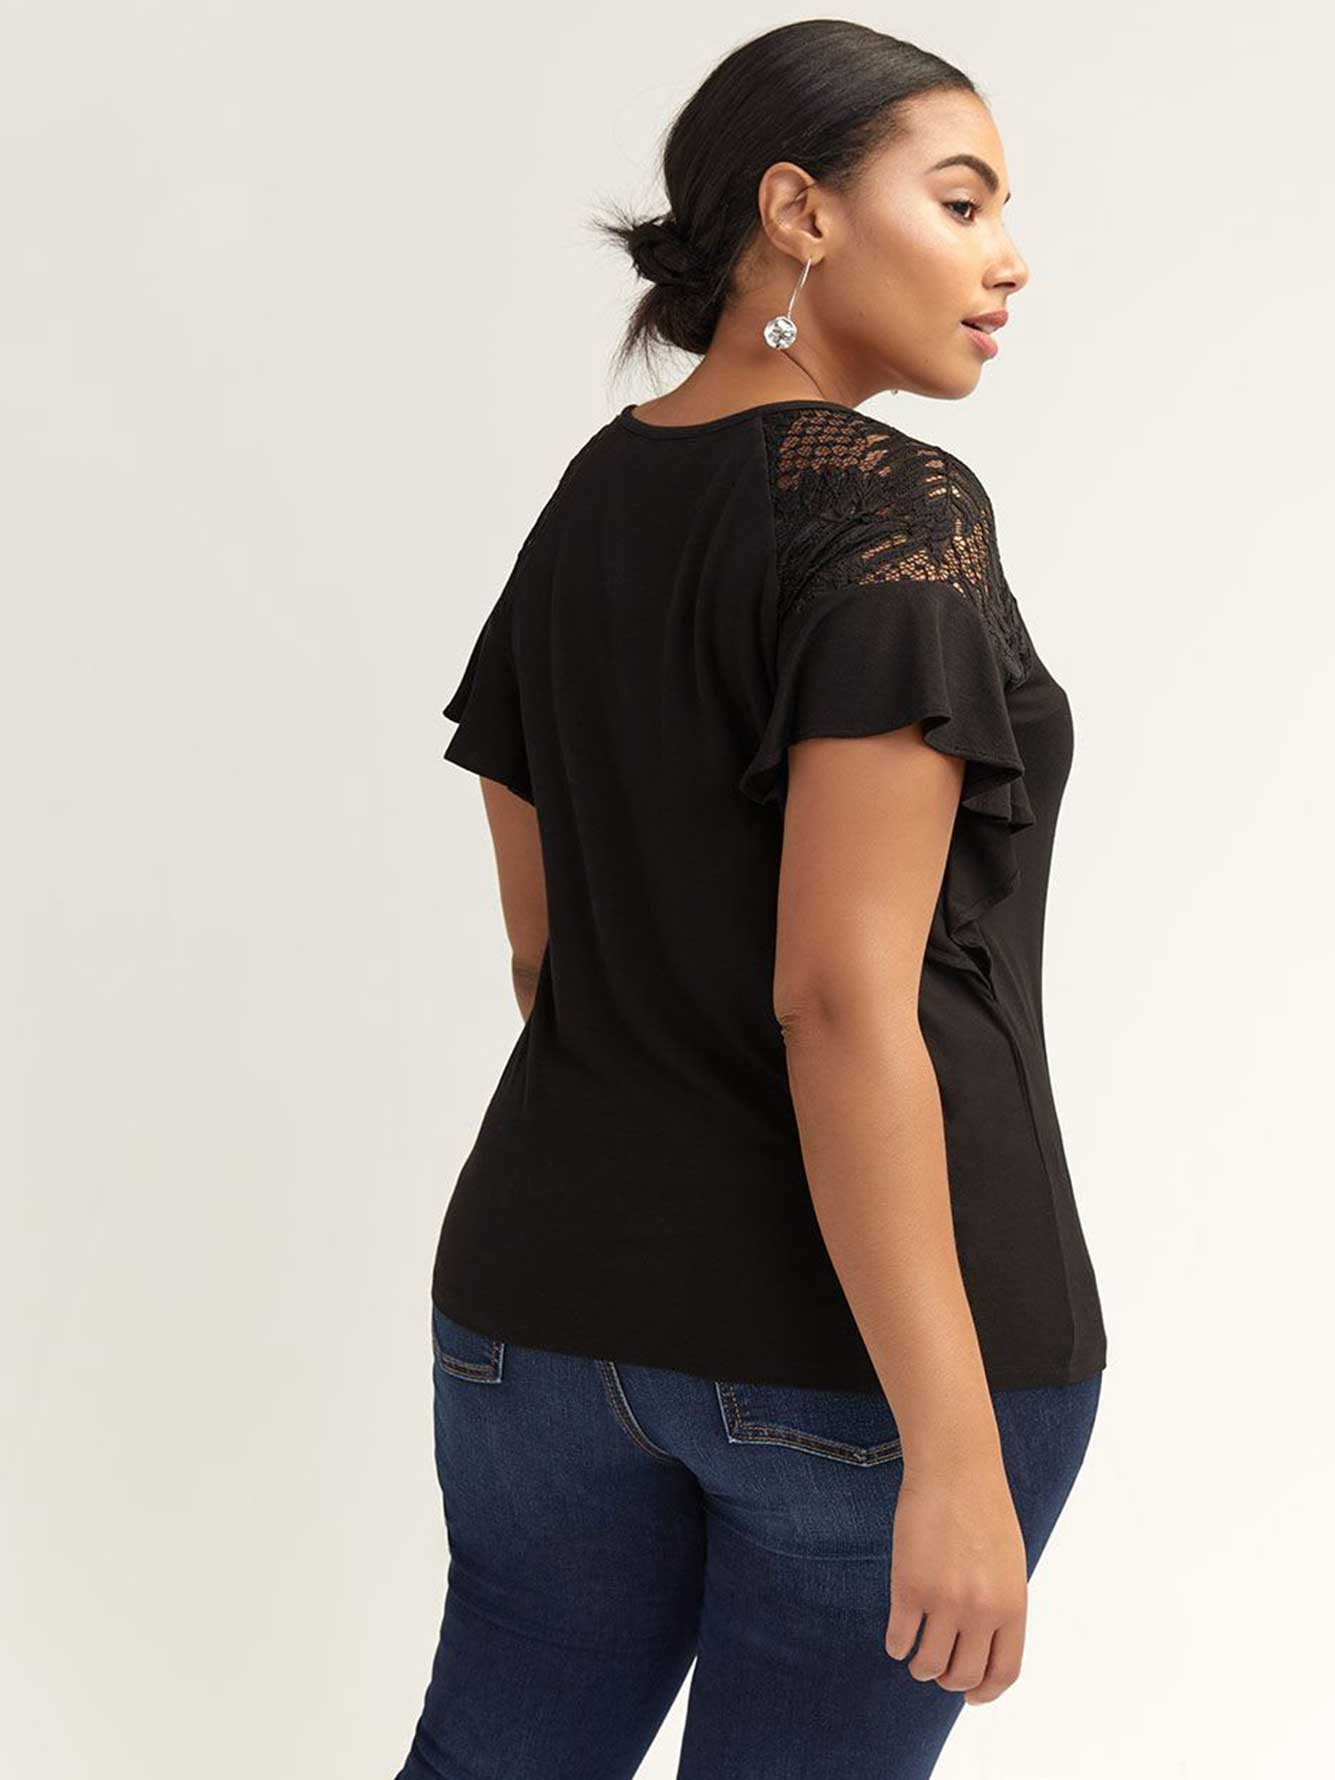 Crew-Neck Top with Lace and Flutter Sleeves - L&L